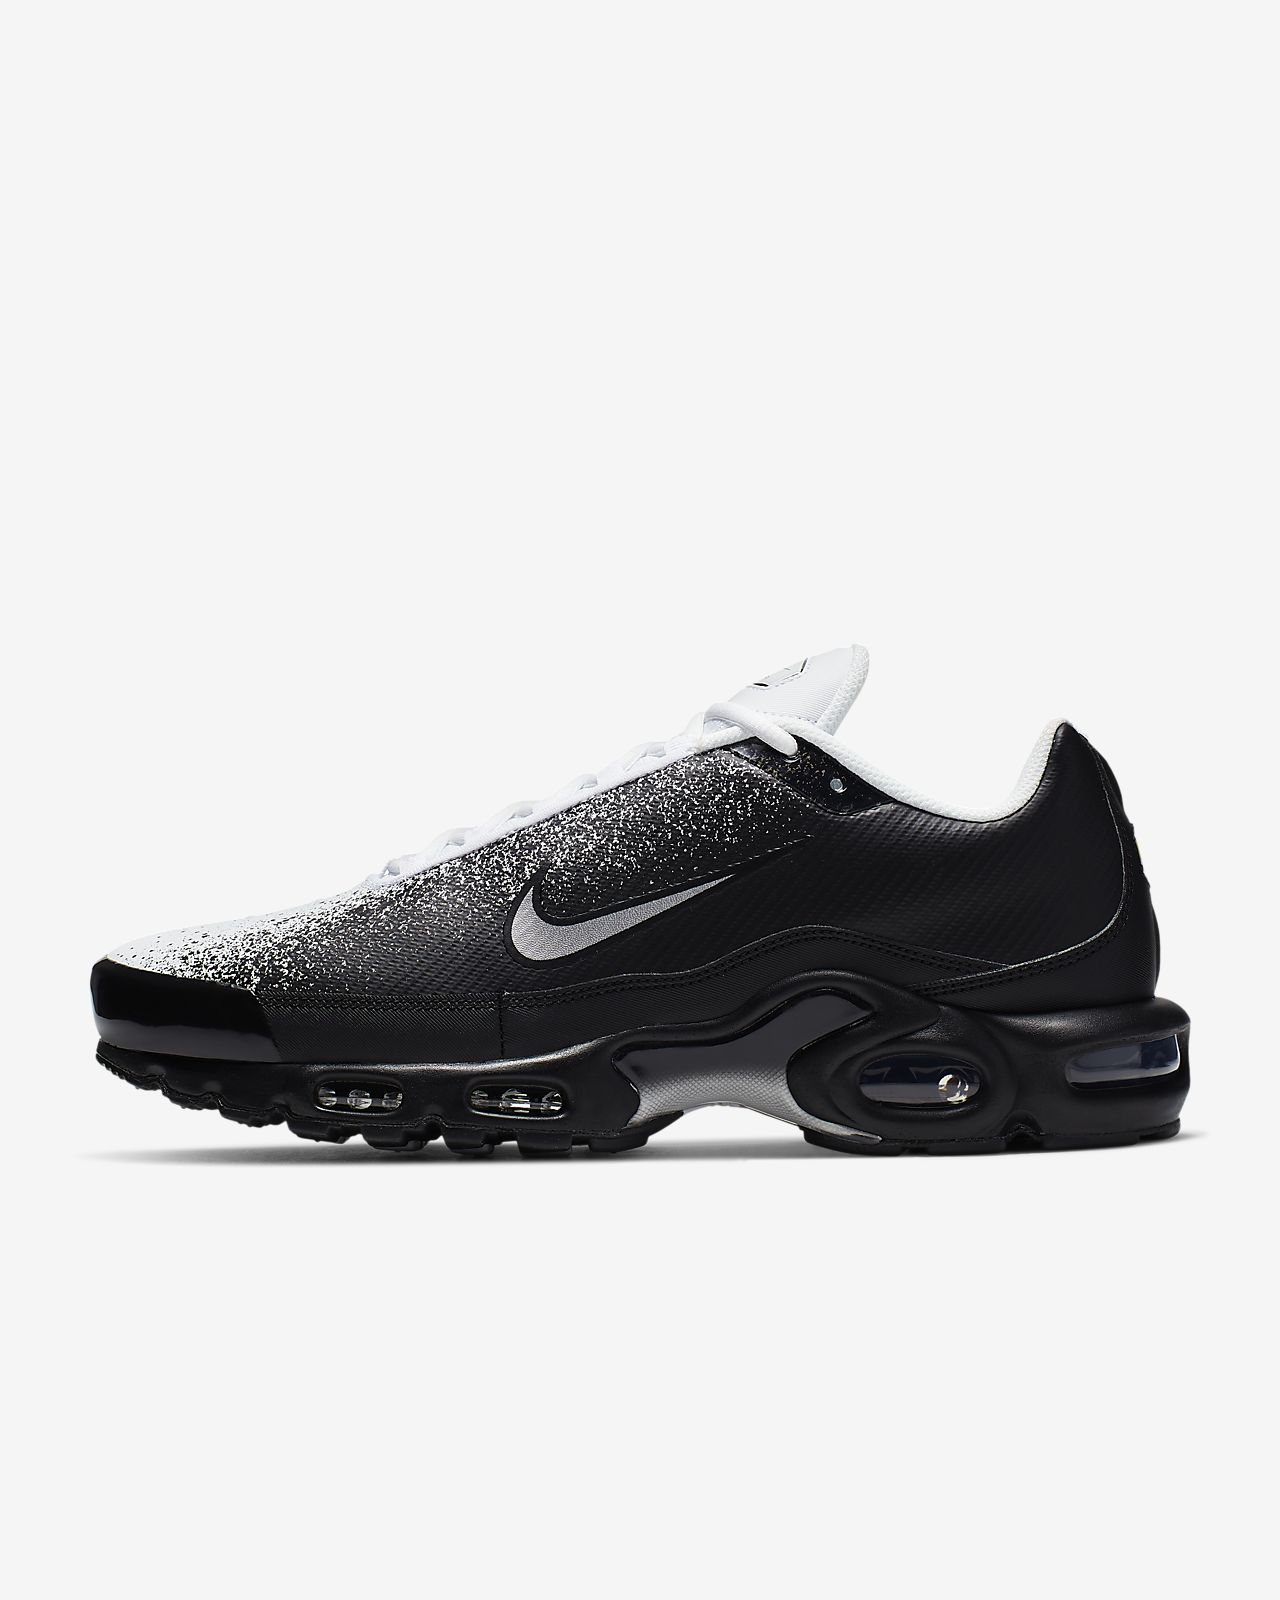 Nike Air Max Plus Tn SE Men's Shoe